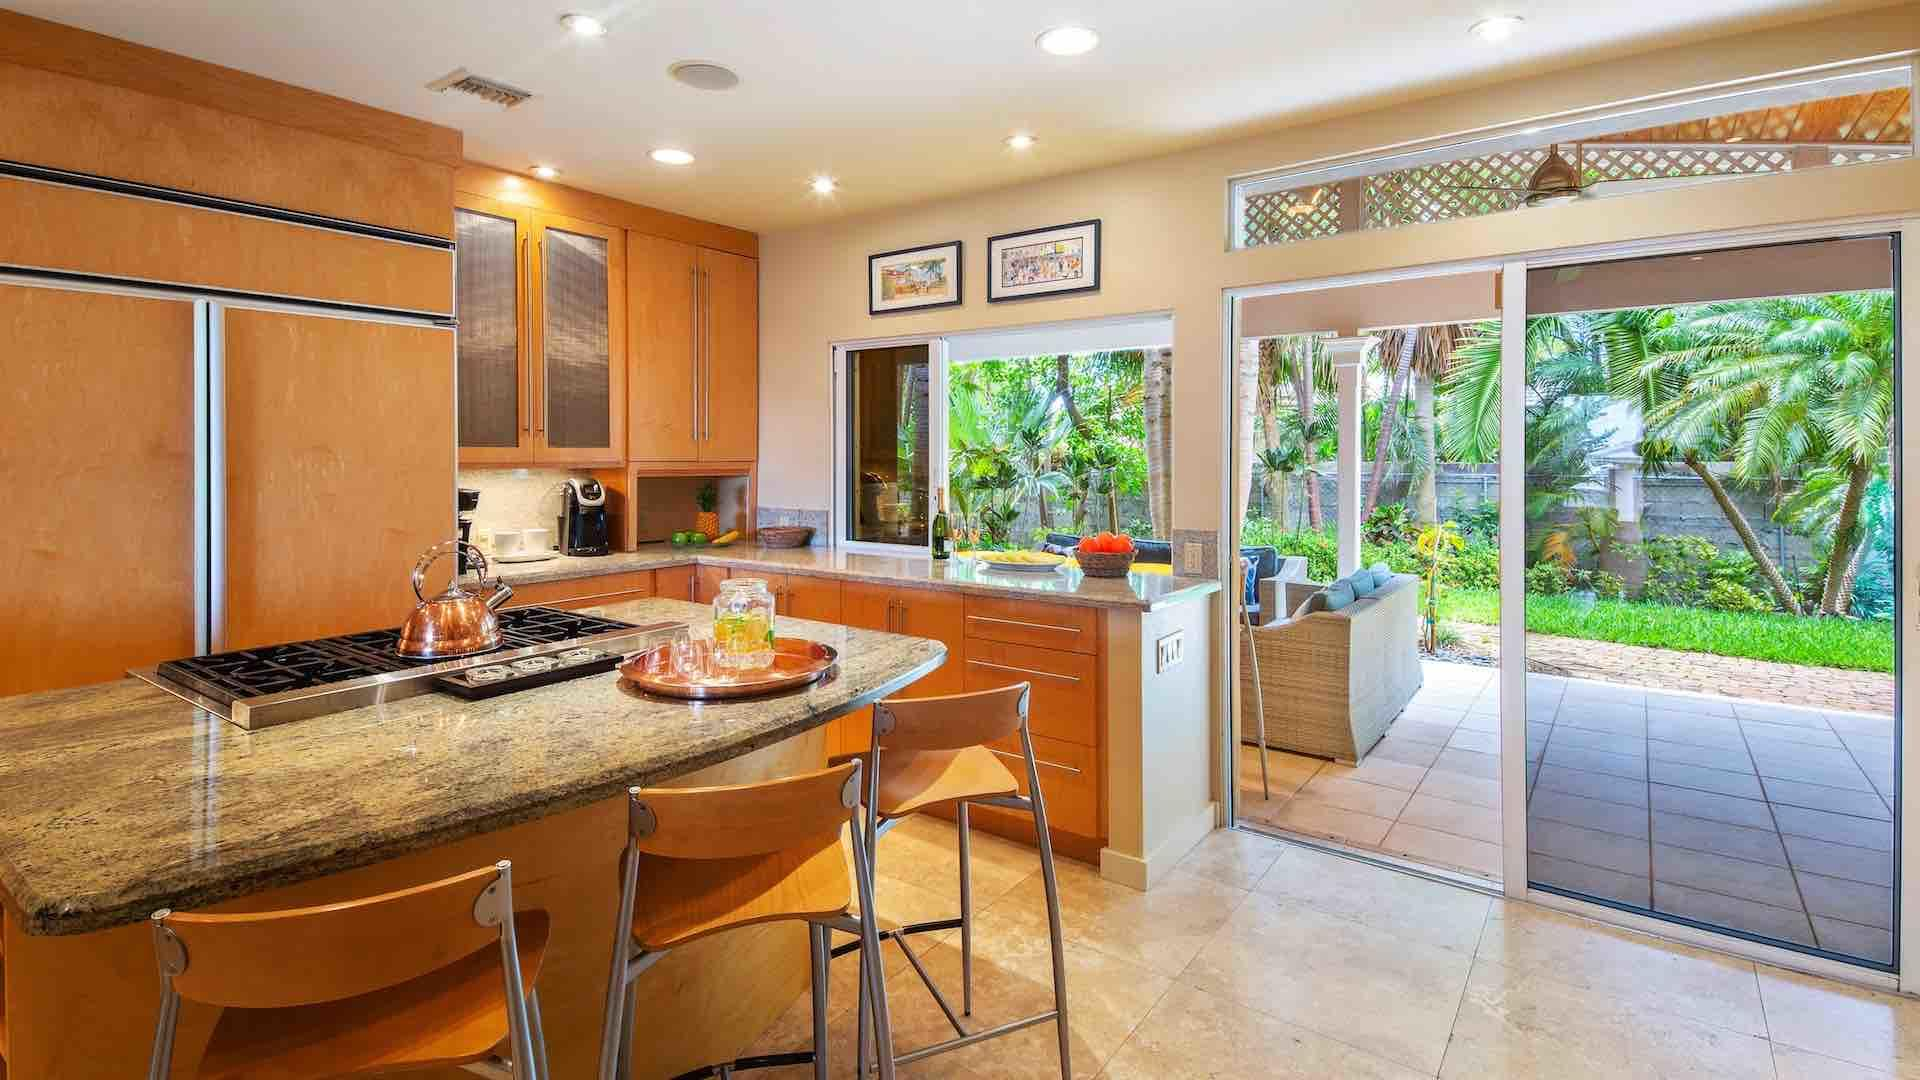 The kitchen features all top of the line appliances & passthrough to the porch…